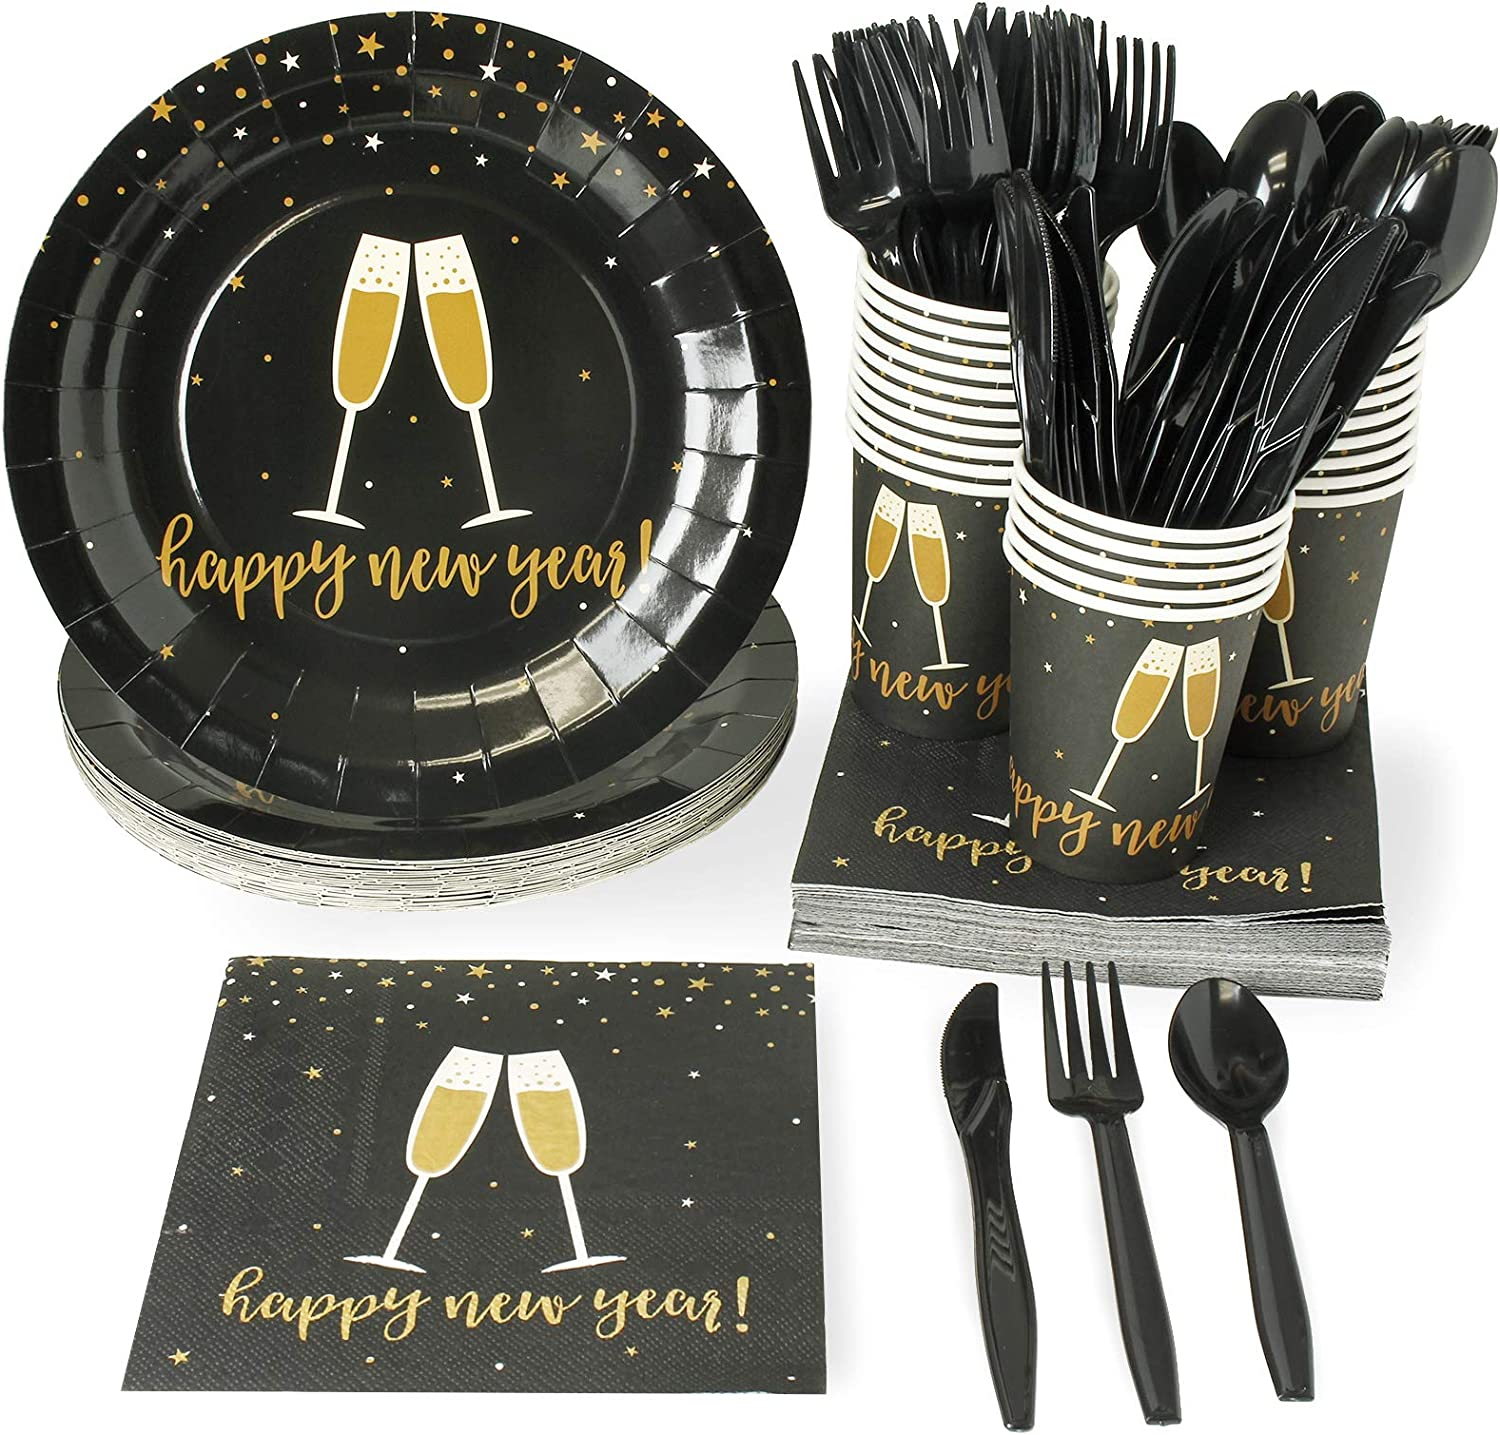 New Year's Eve Party Bundle, Includes NYE Plates, Napkins, Cups, Cutlery (24 Guests,144 Pieces)